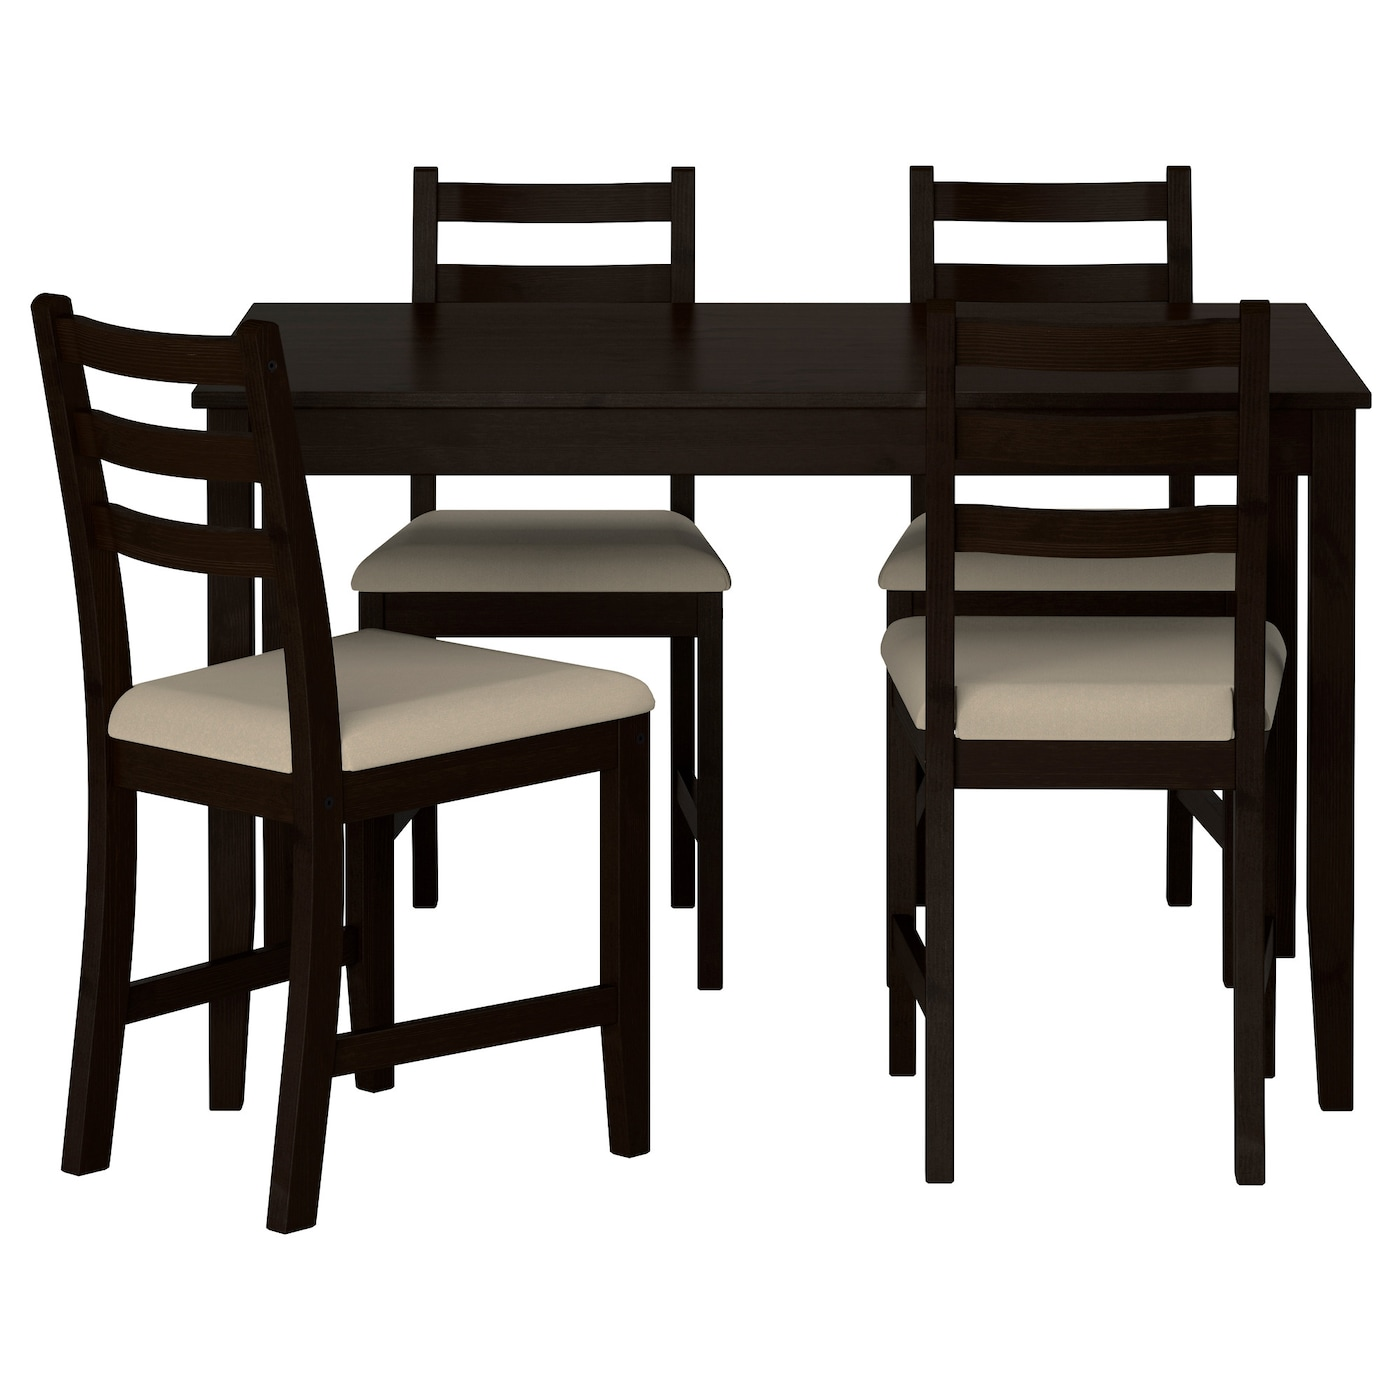 LERHAMN Table and 4 chairs Black brownramna beige 118x74 cm IKEA